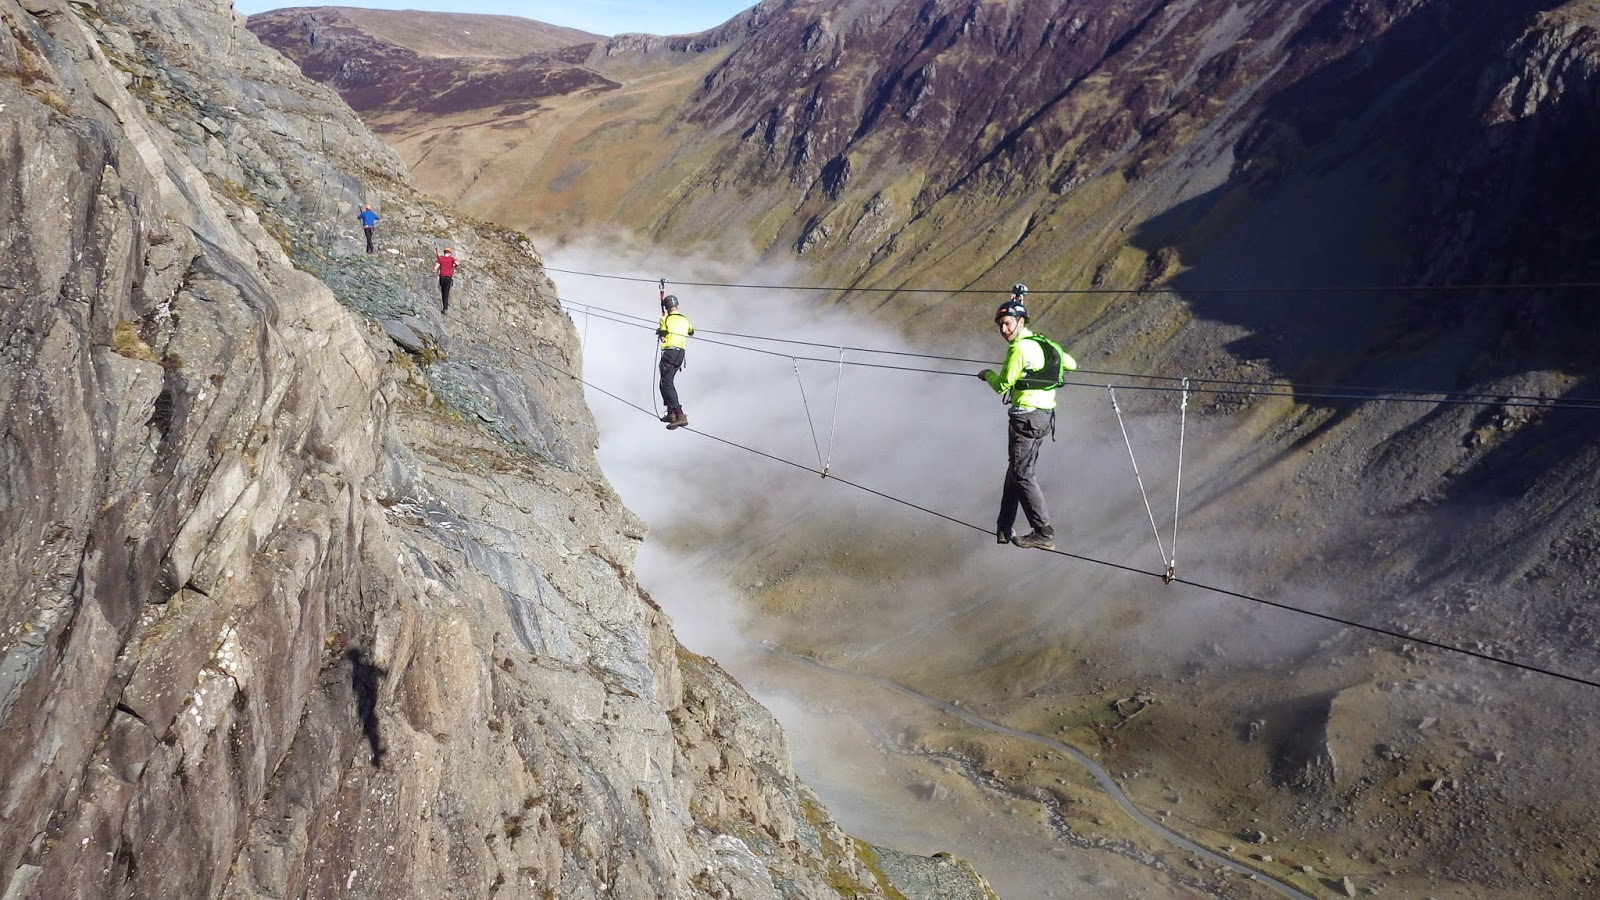 Episode 7: Ropes, Rides and Inversions